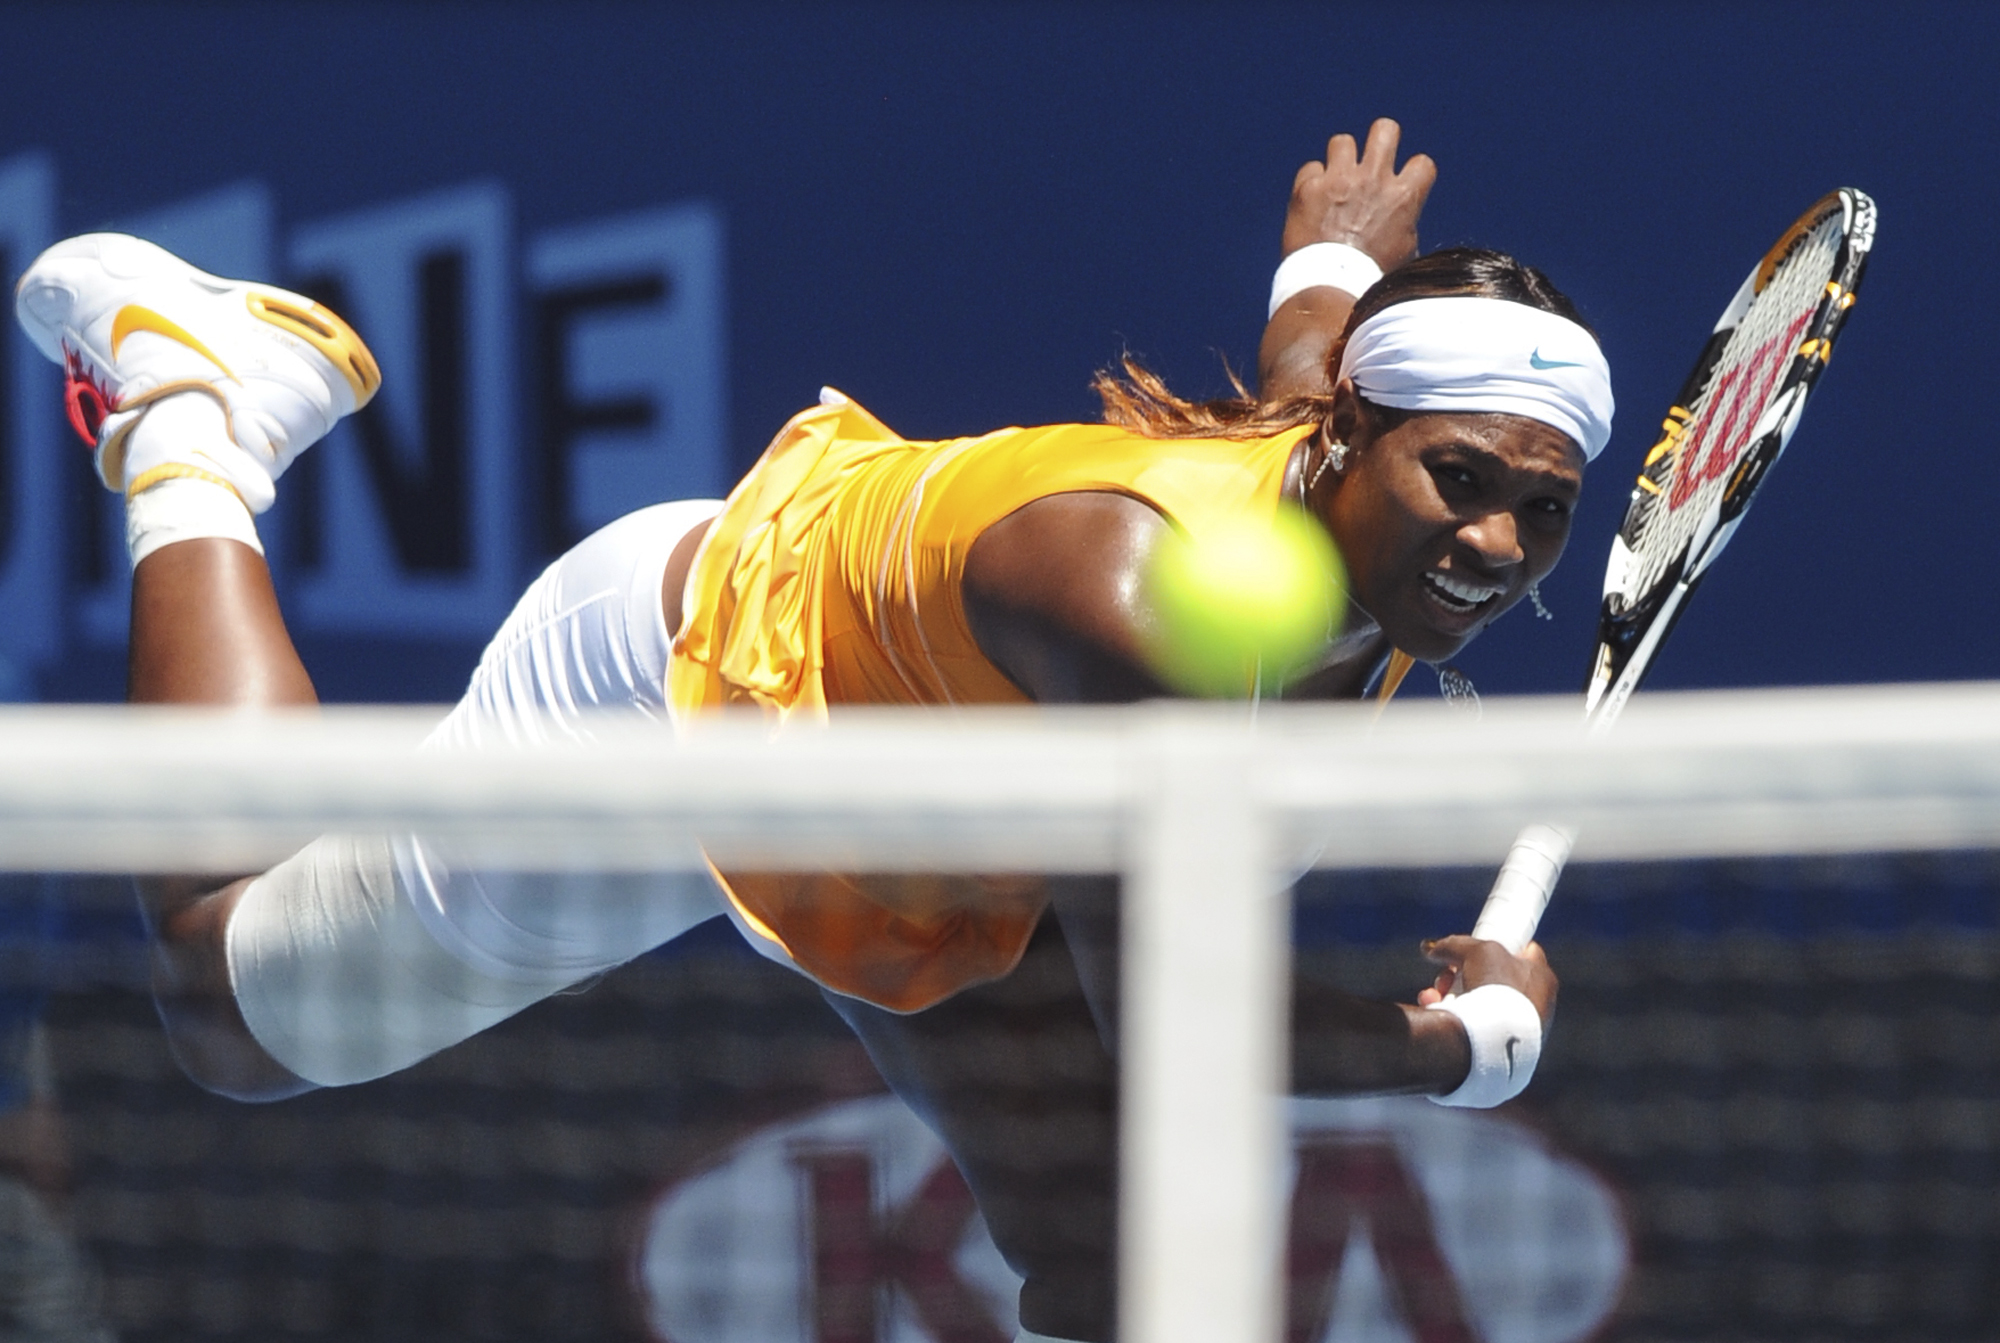 Serena Williams of the U.S., serves to Li Na of China during her Women's singles semifinal match at the Australian Open tennis tournament in Melbourne...